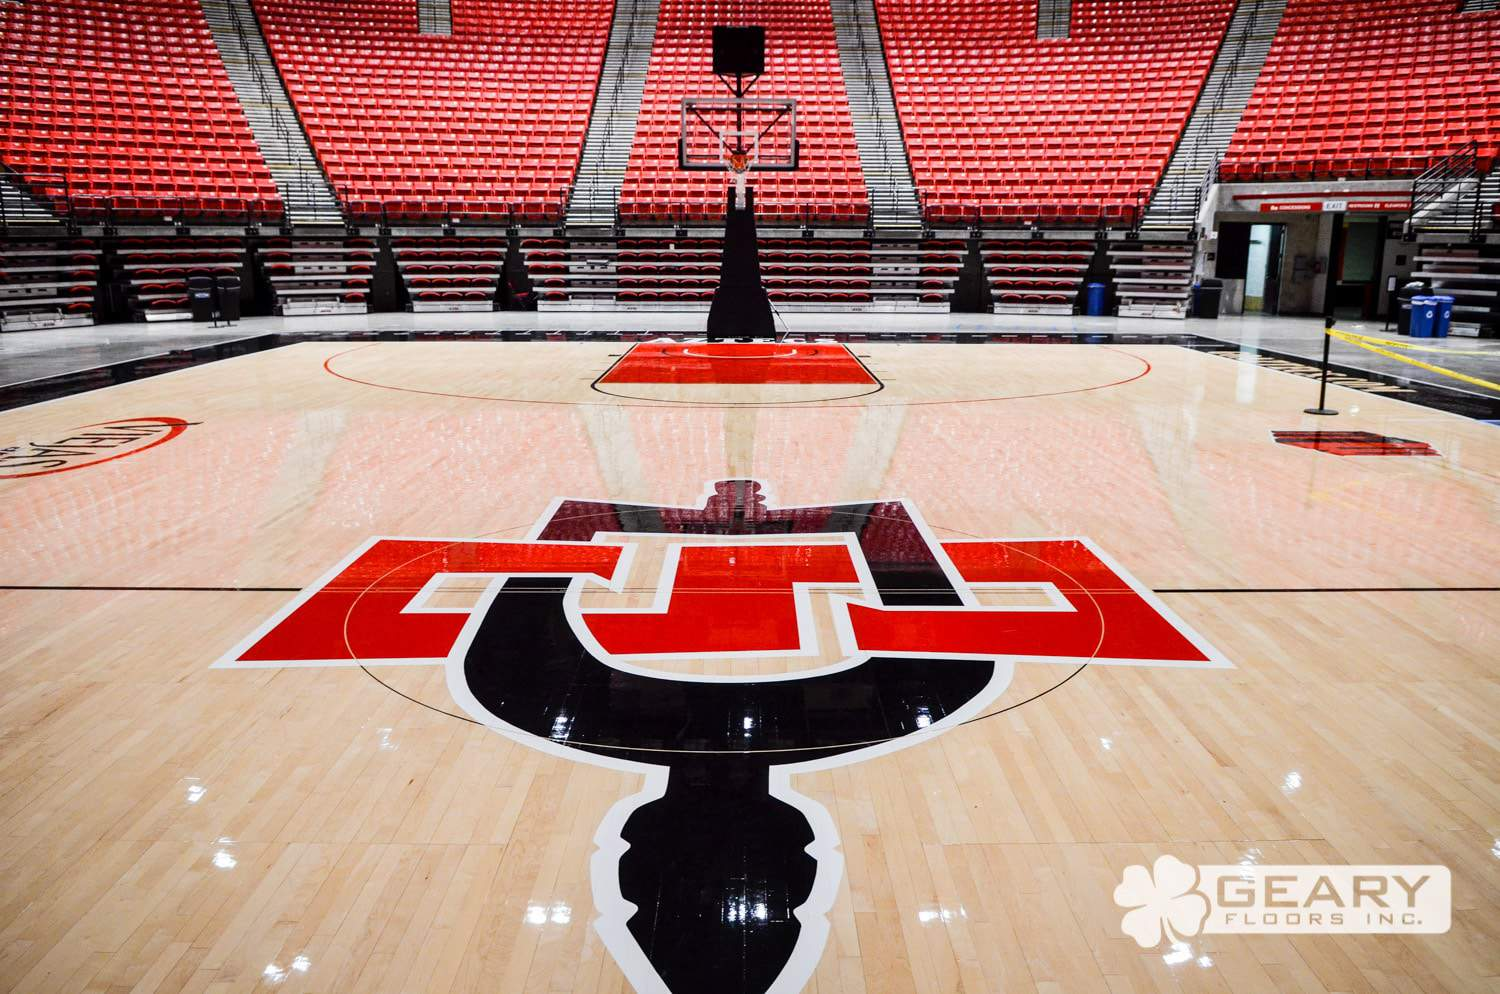 San Diego Athletic Flooring Geary Floors 179 0547 - Basketball Court Flooring - Wood Gym Flooring - Hardwood Flooring San Diego